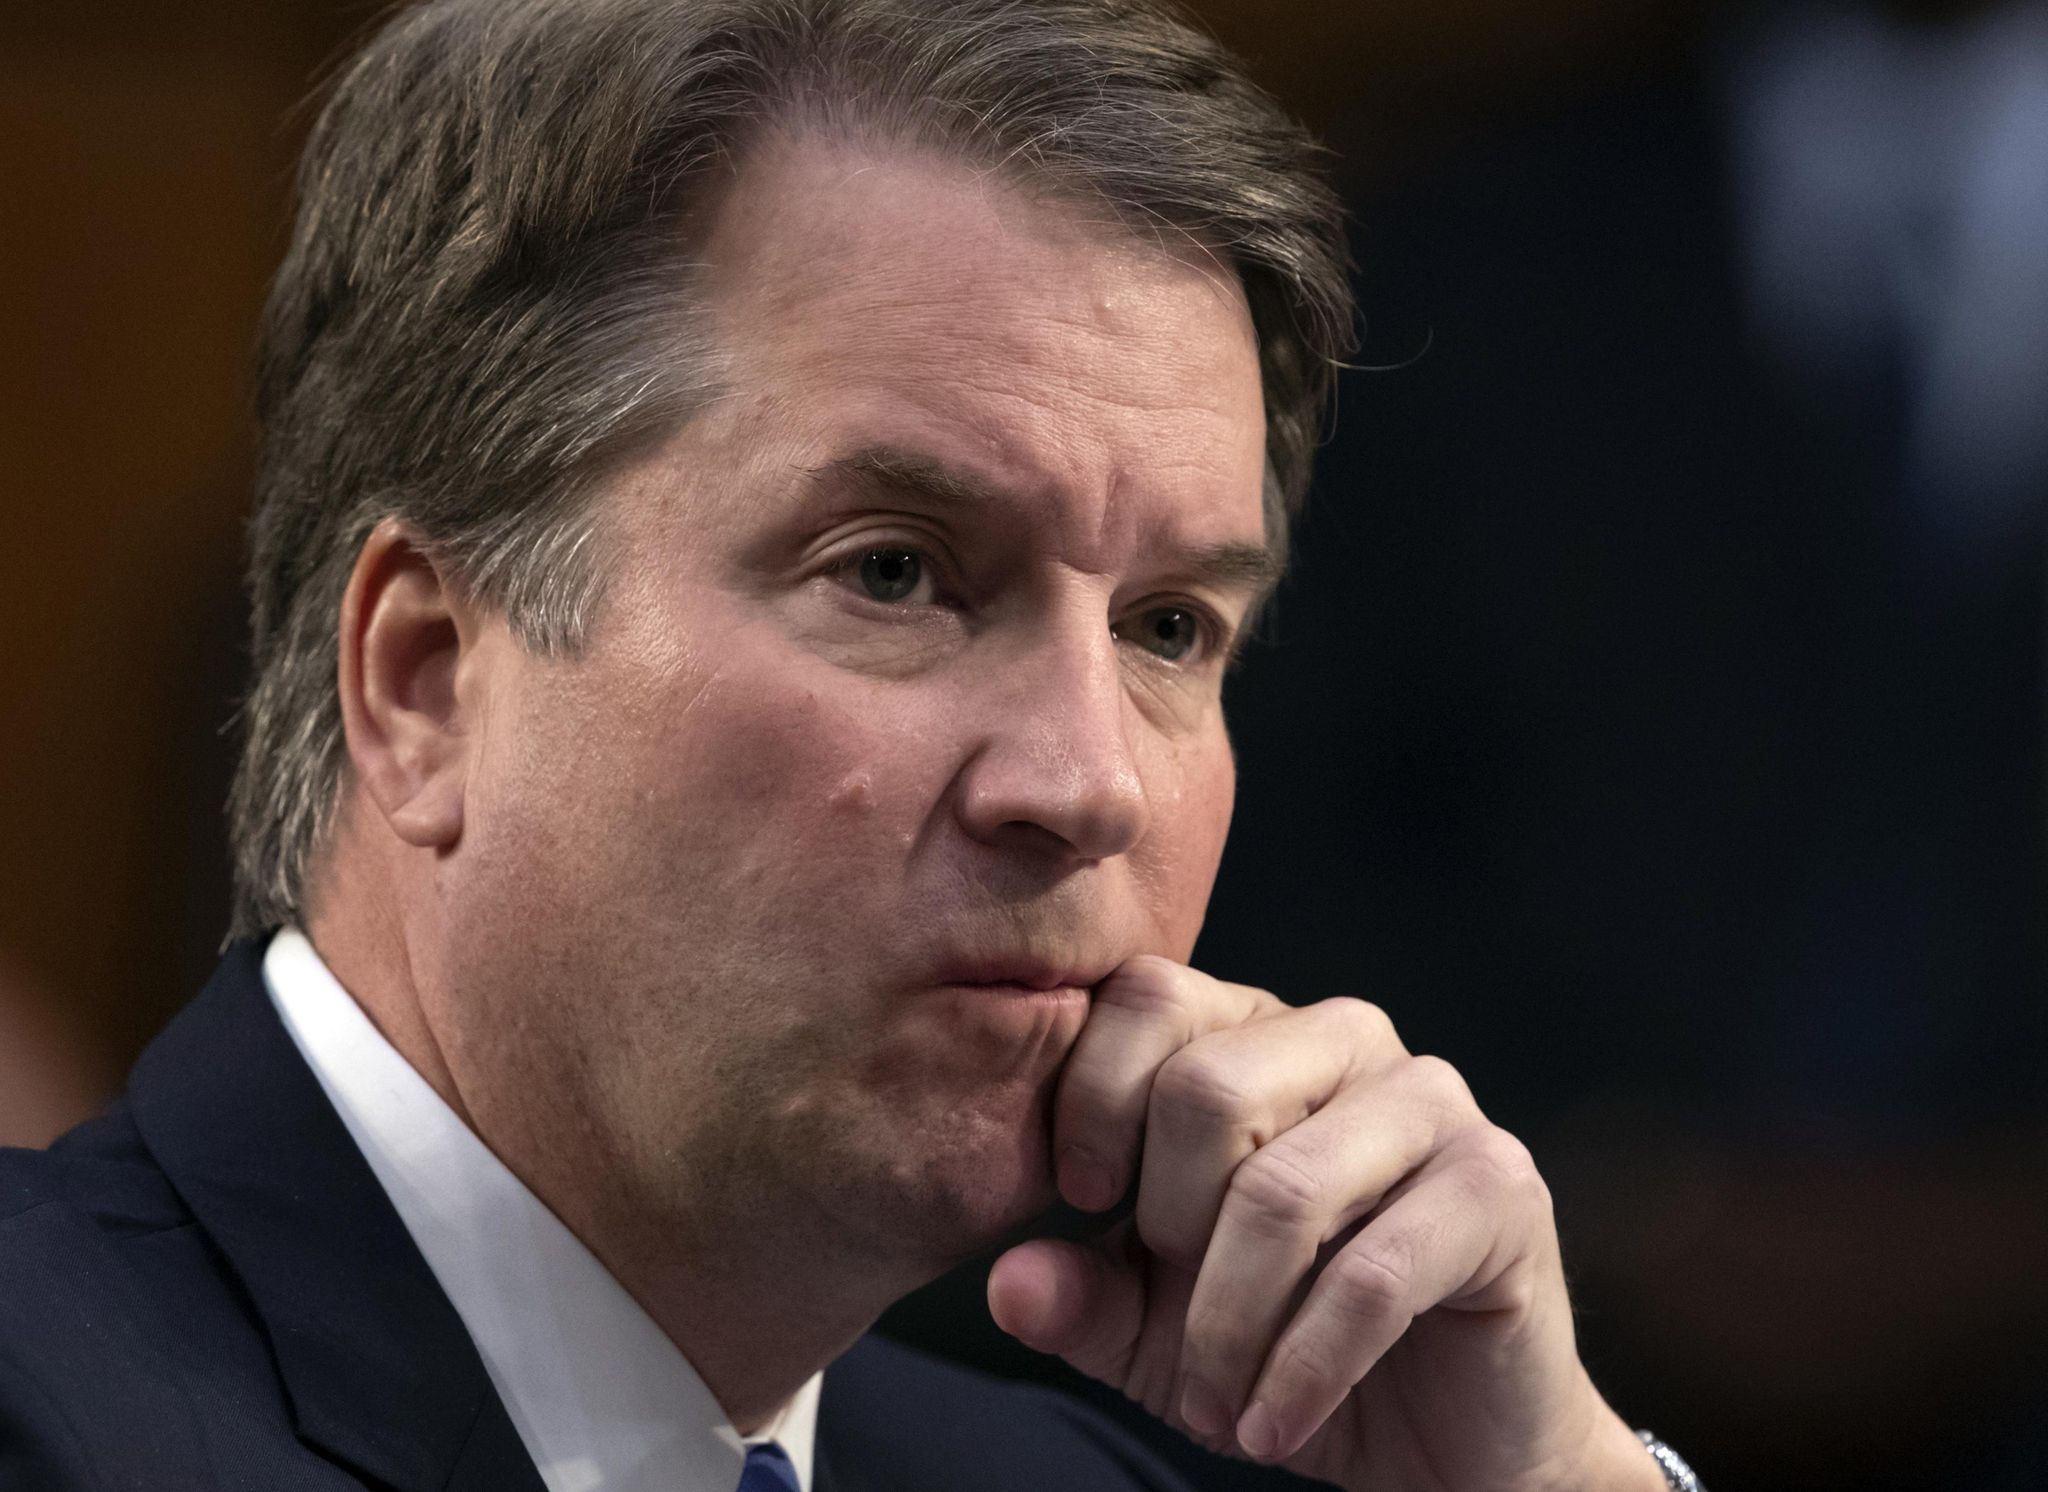 The Latest: No indication GOP plans to delay Kavanaugh vote